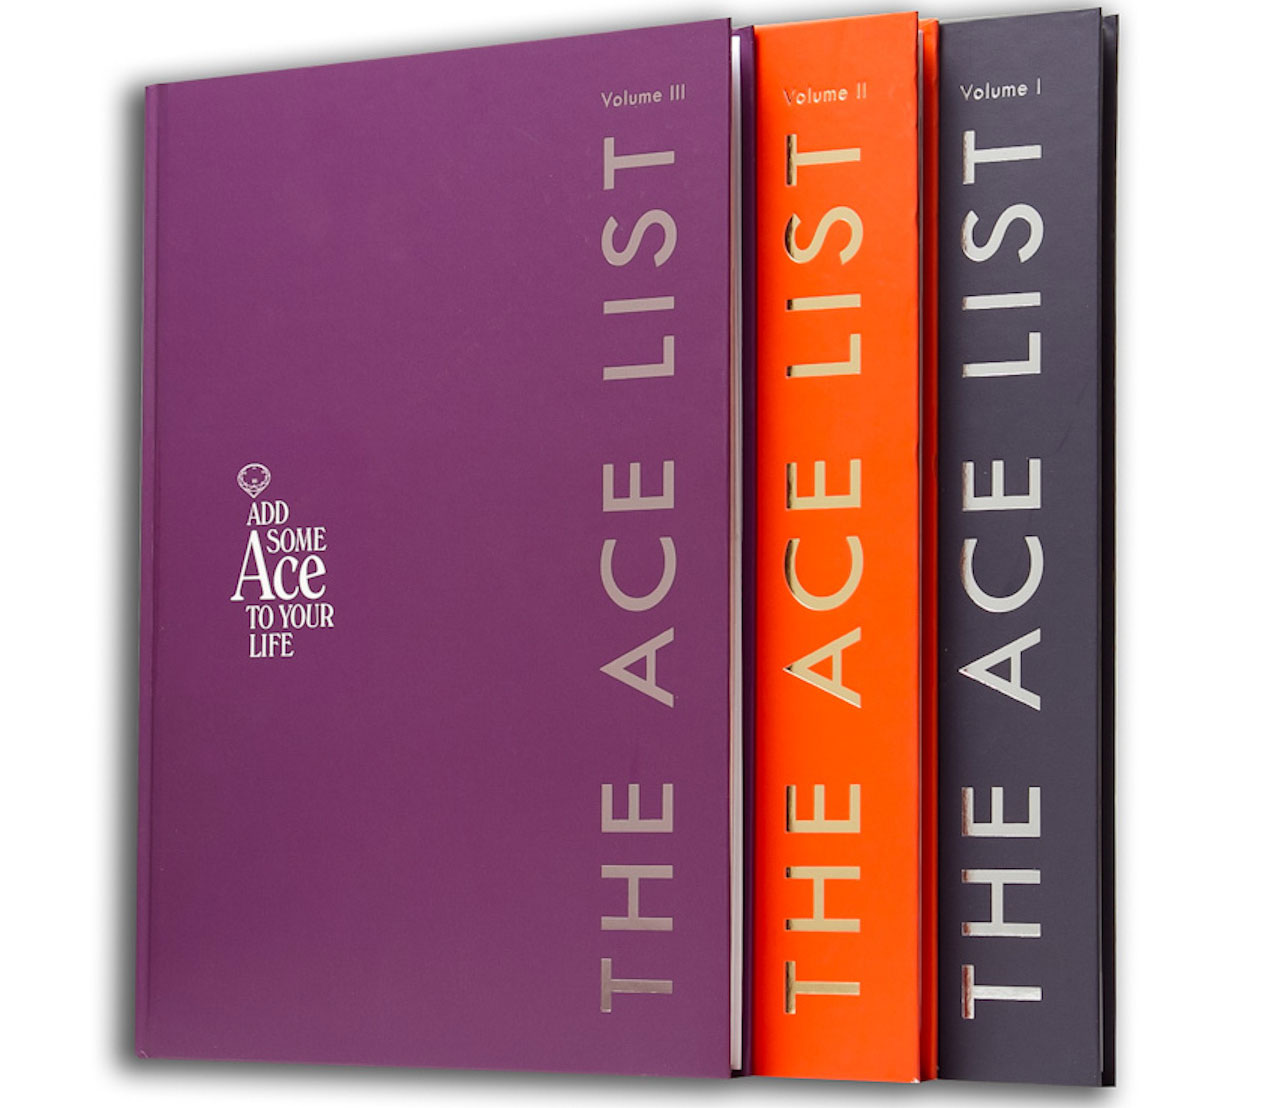 """Ace Jewelers launches """"The Ace List"""" Volume III on 40th anniversary"""